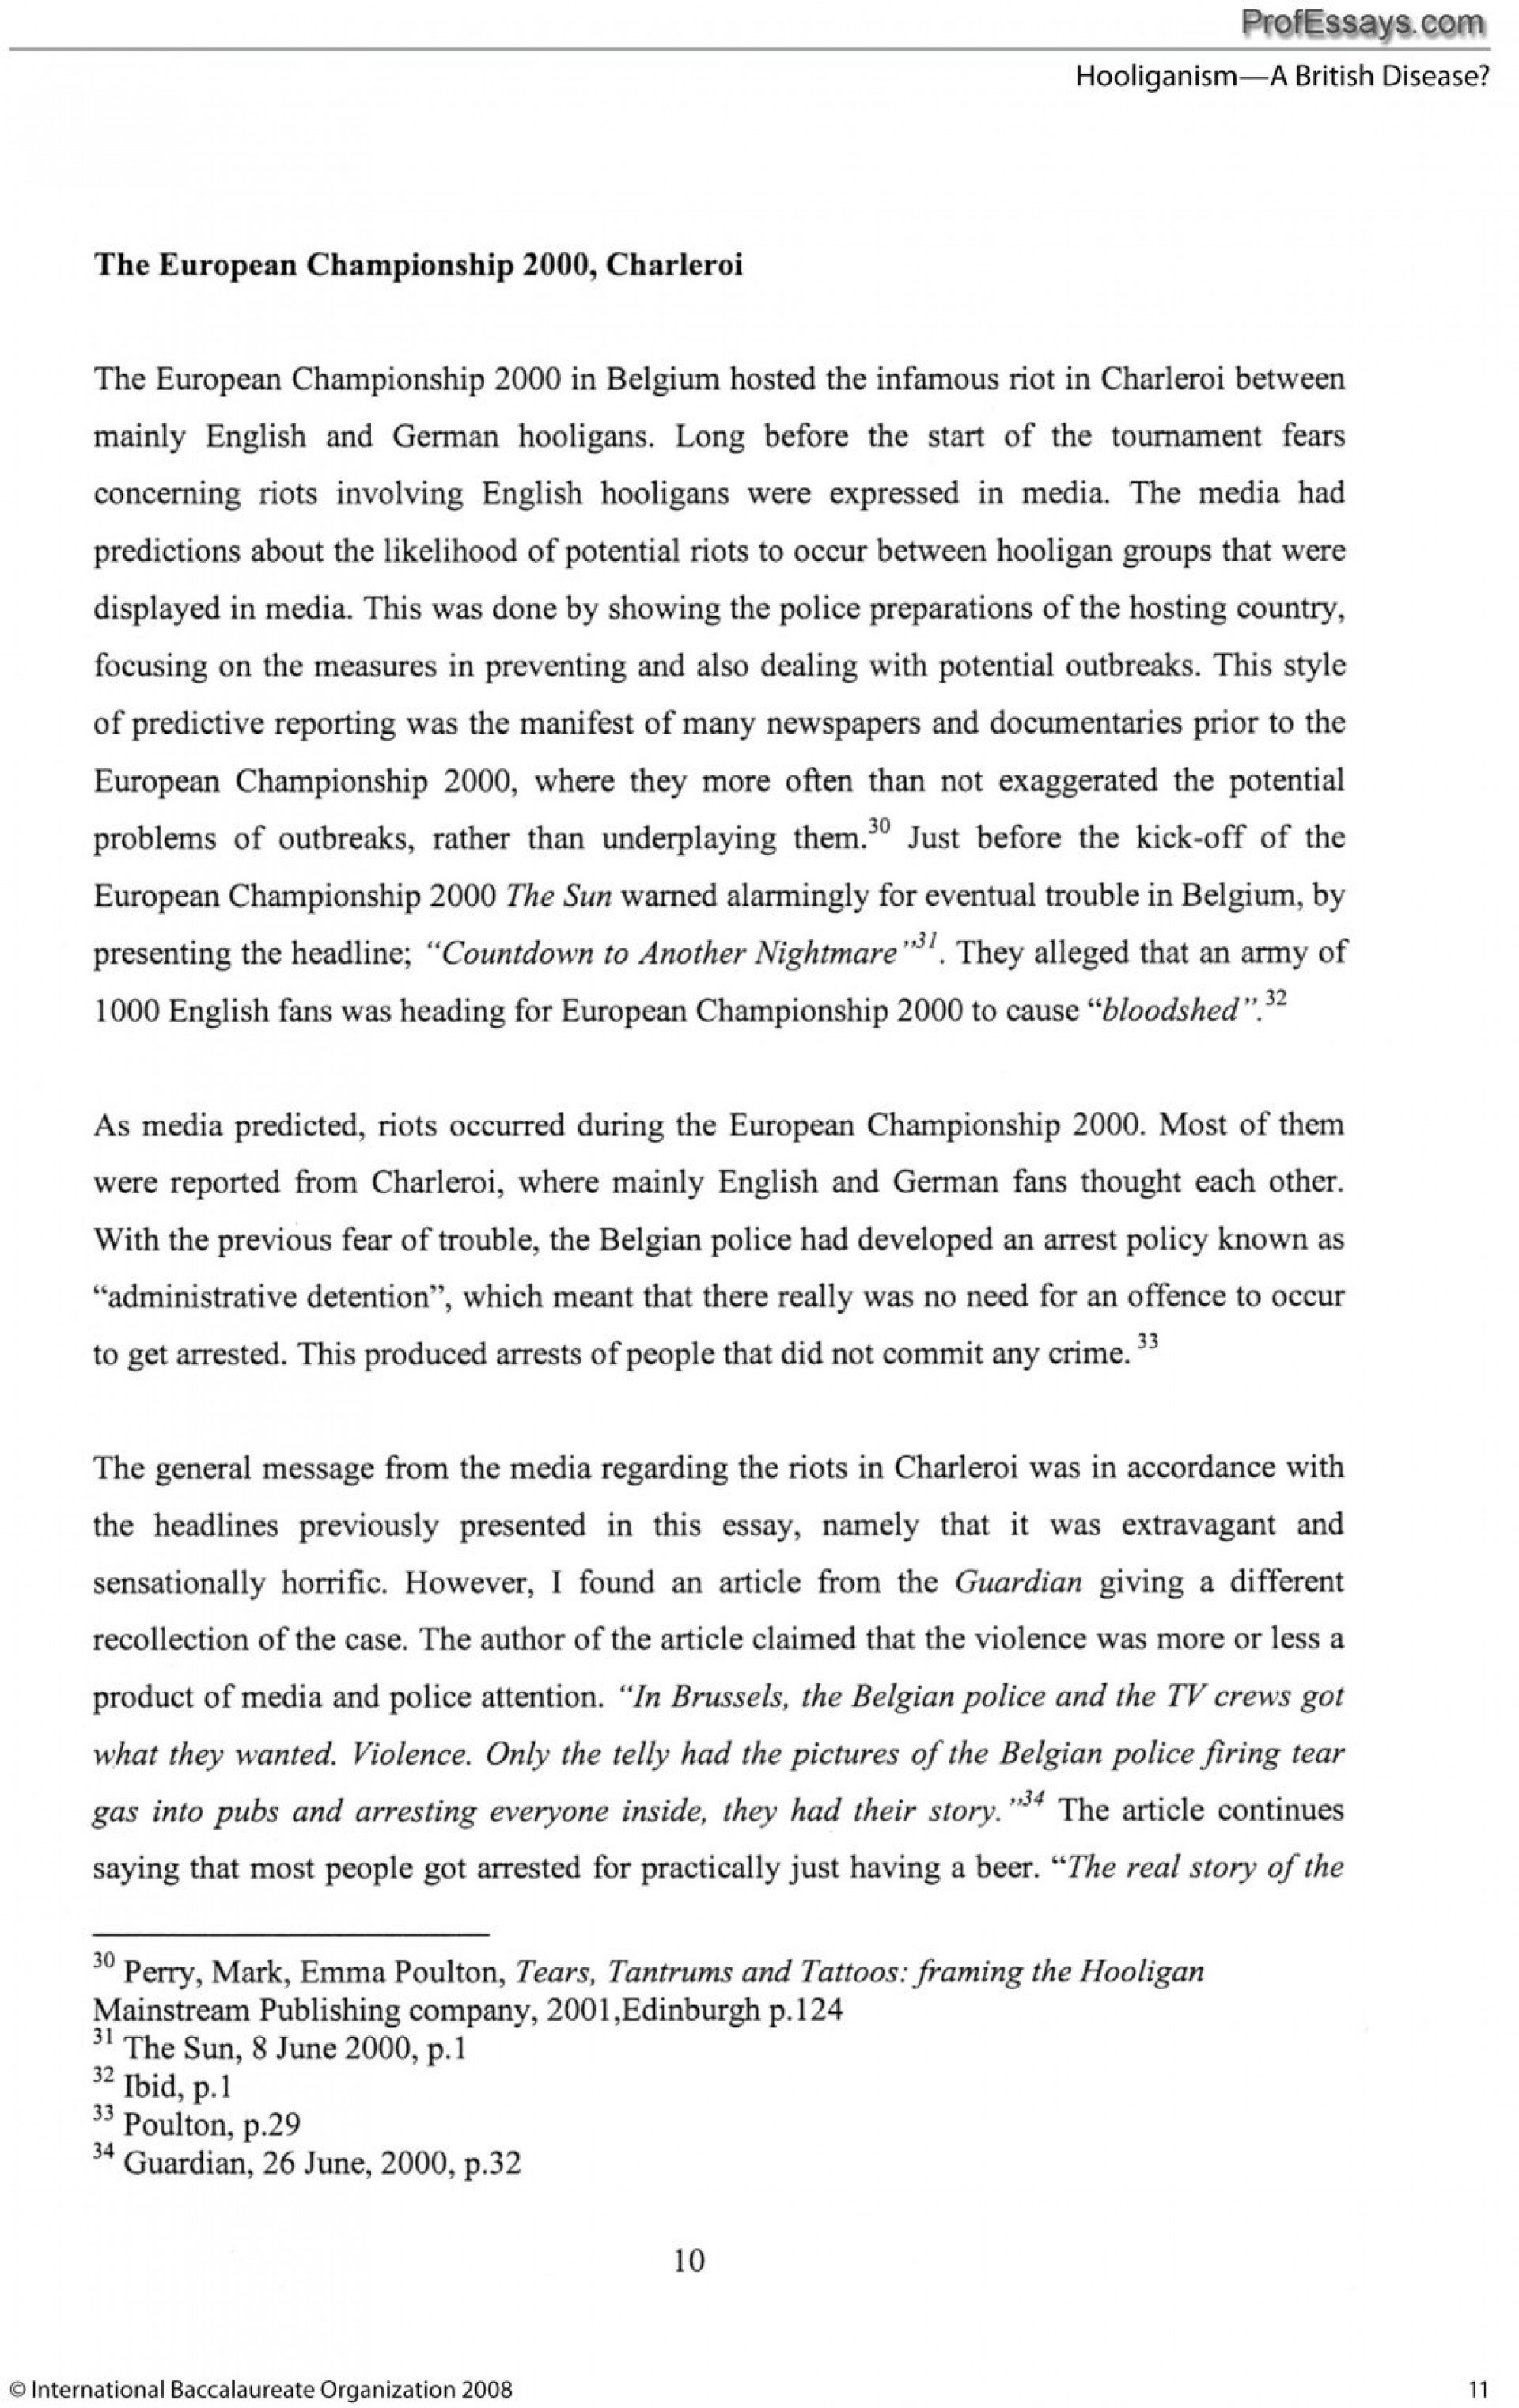 english essay book for css free download example of